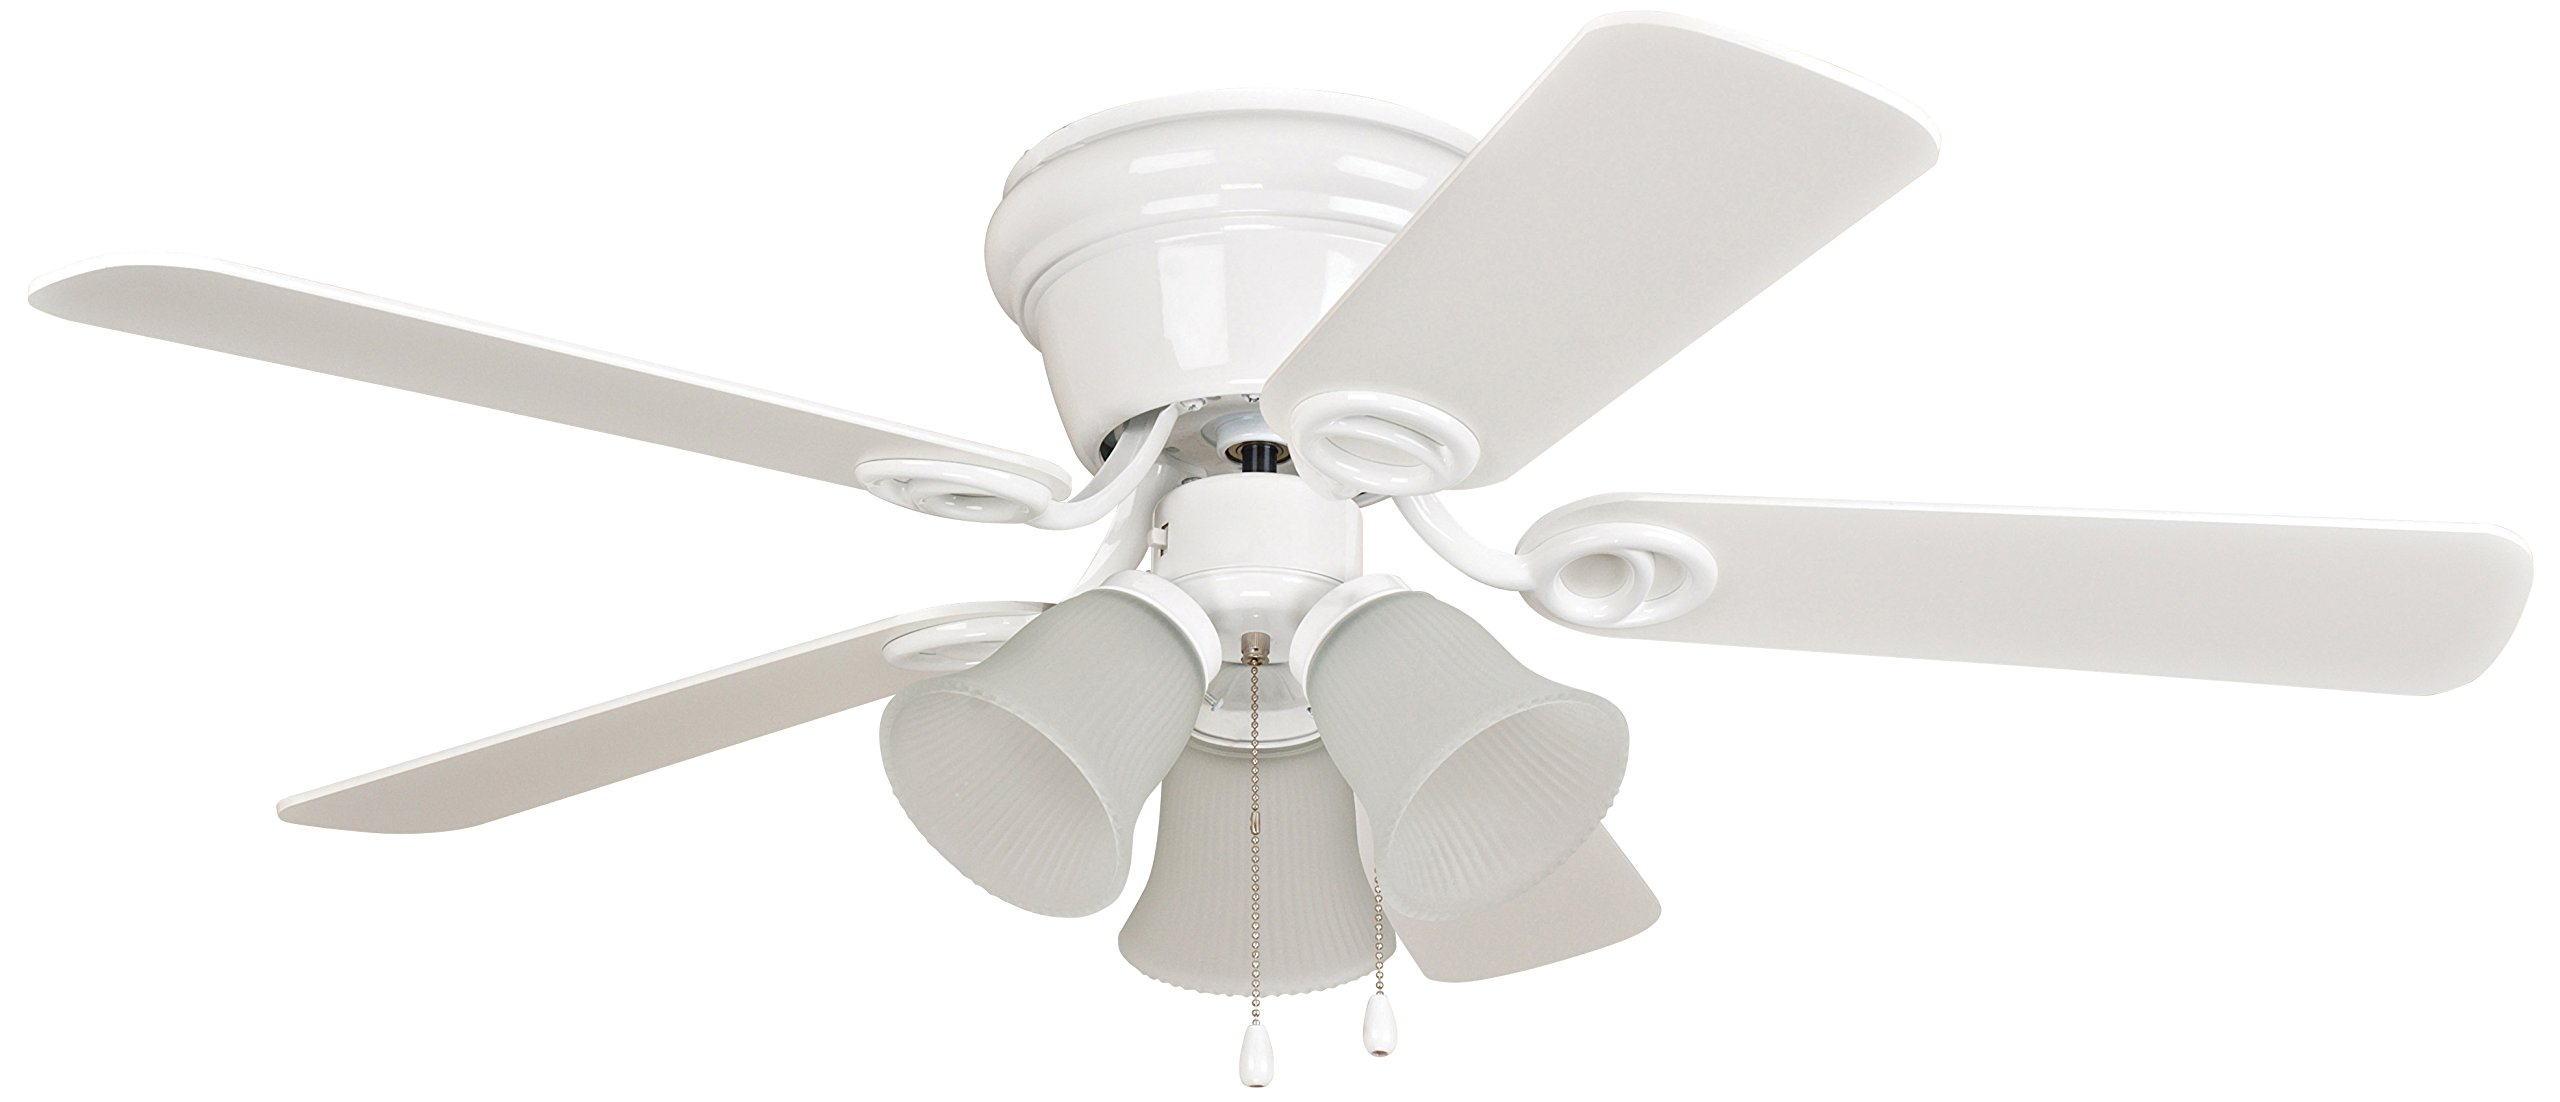 Ellington WC42WW5C3F Wyman Ceiling Fan with White/White Washed Blades and Matte White Glass, 42'', White